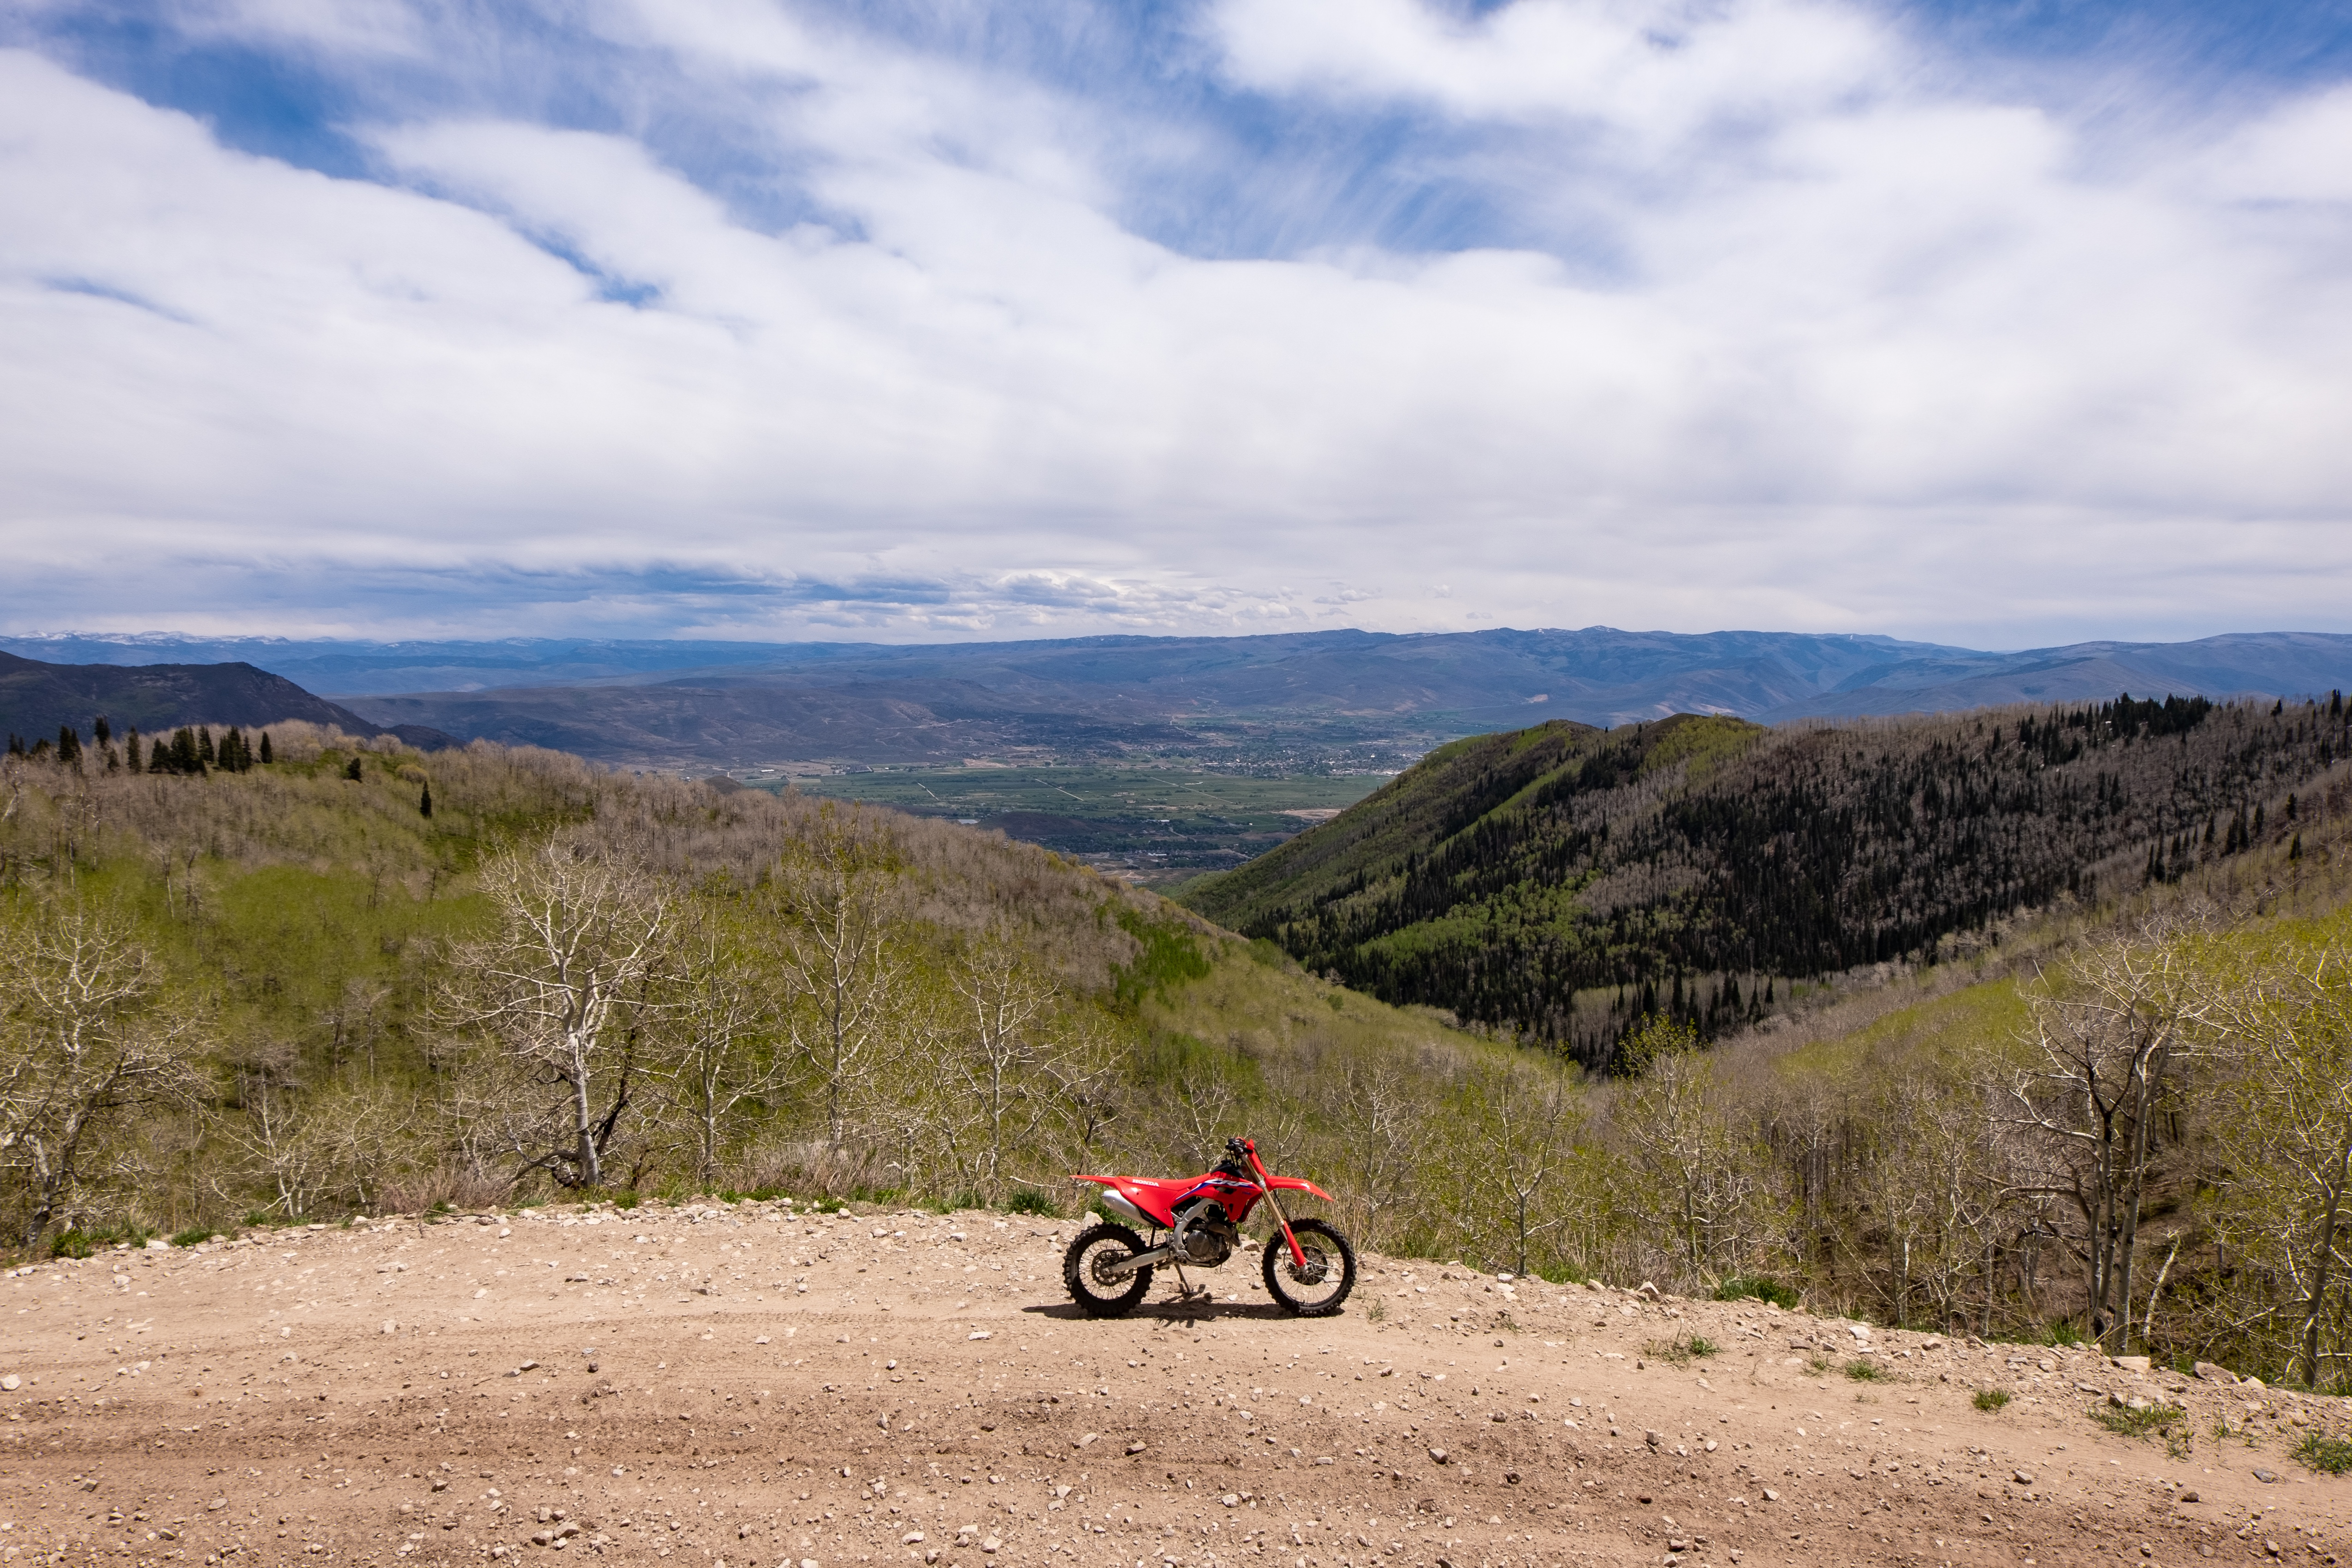 At the top of the mountain with the CRF450RX.